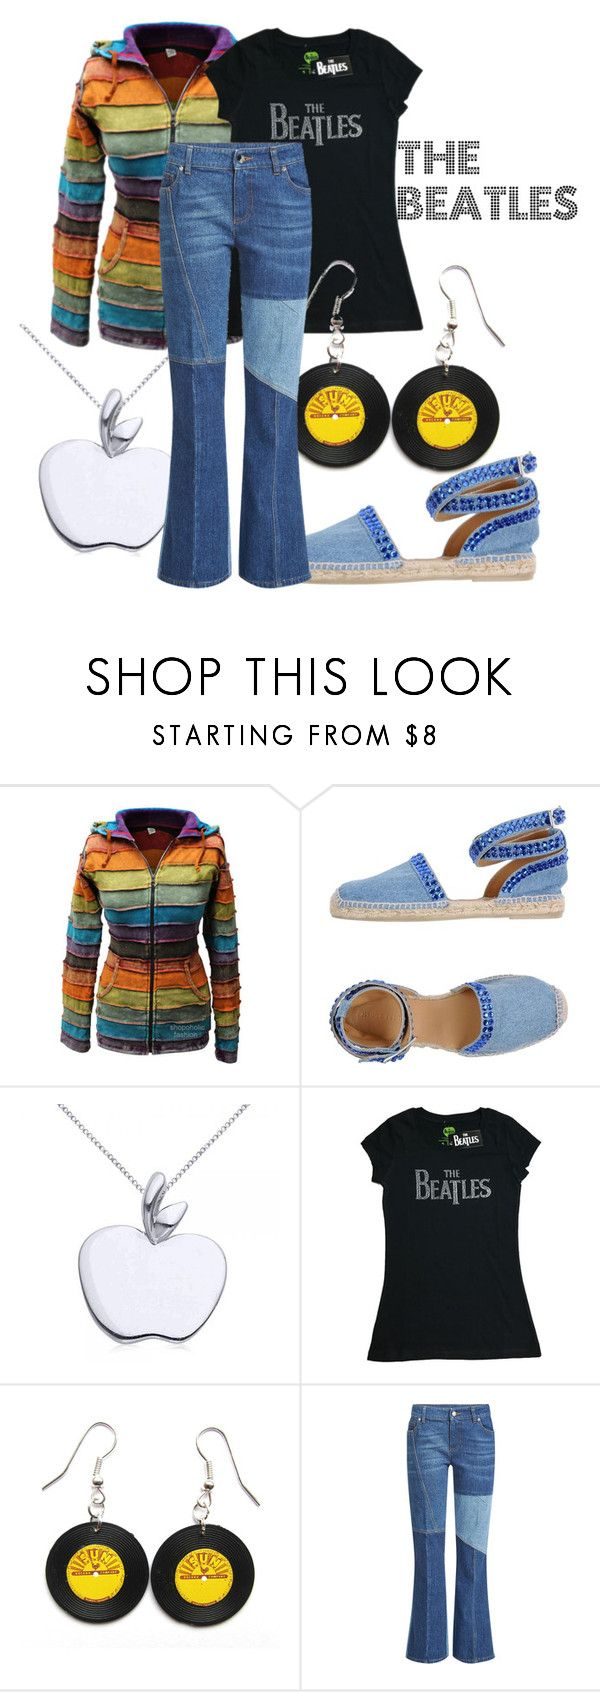 """""""The Beatles - Band T-Shirt"""" by one-little-spark ❤ liked on Polyvore featuring Philipp Plein, Allurez, Alexander McQueen, Beatles and bandtees"""